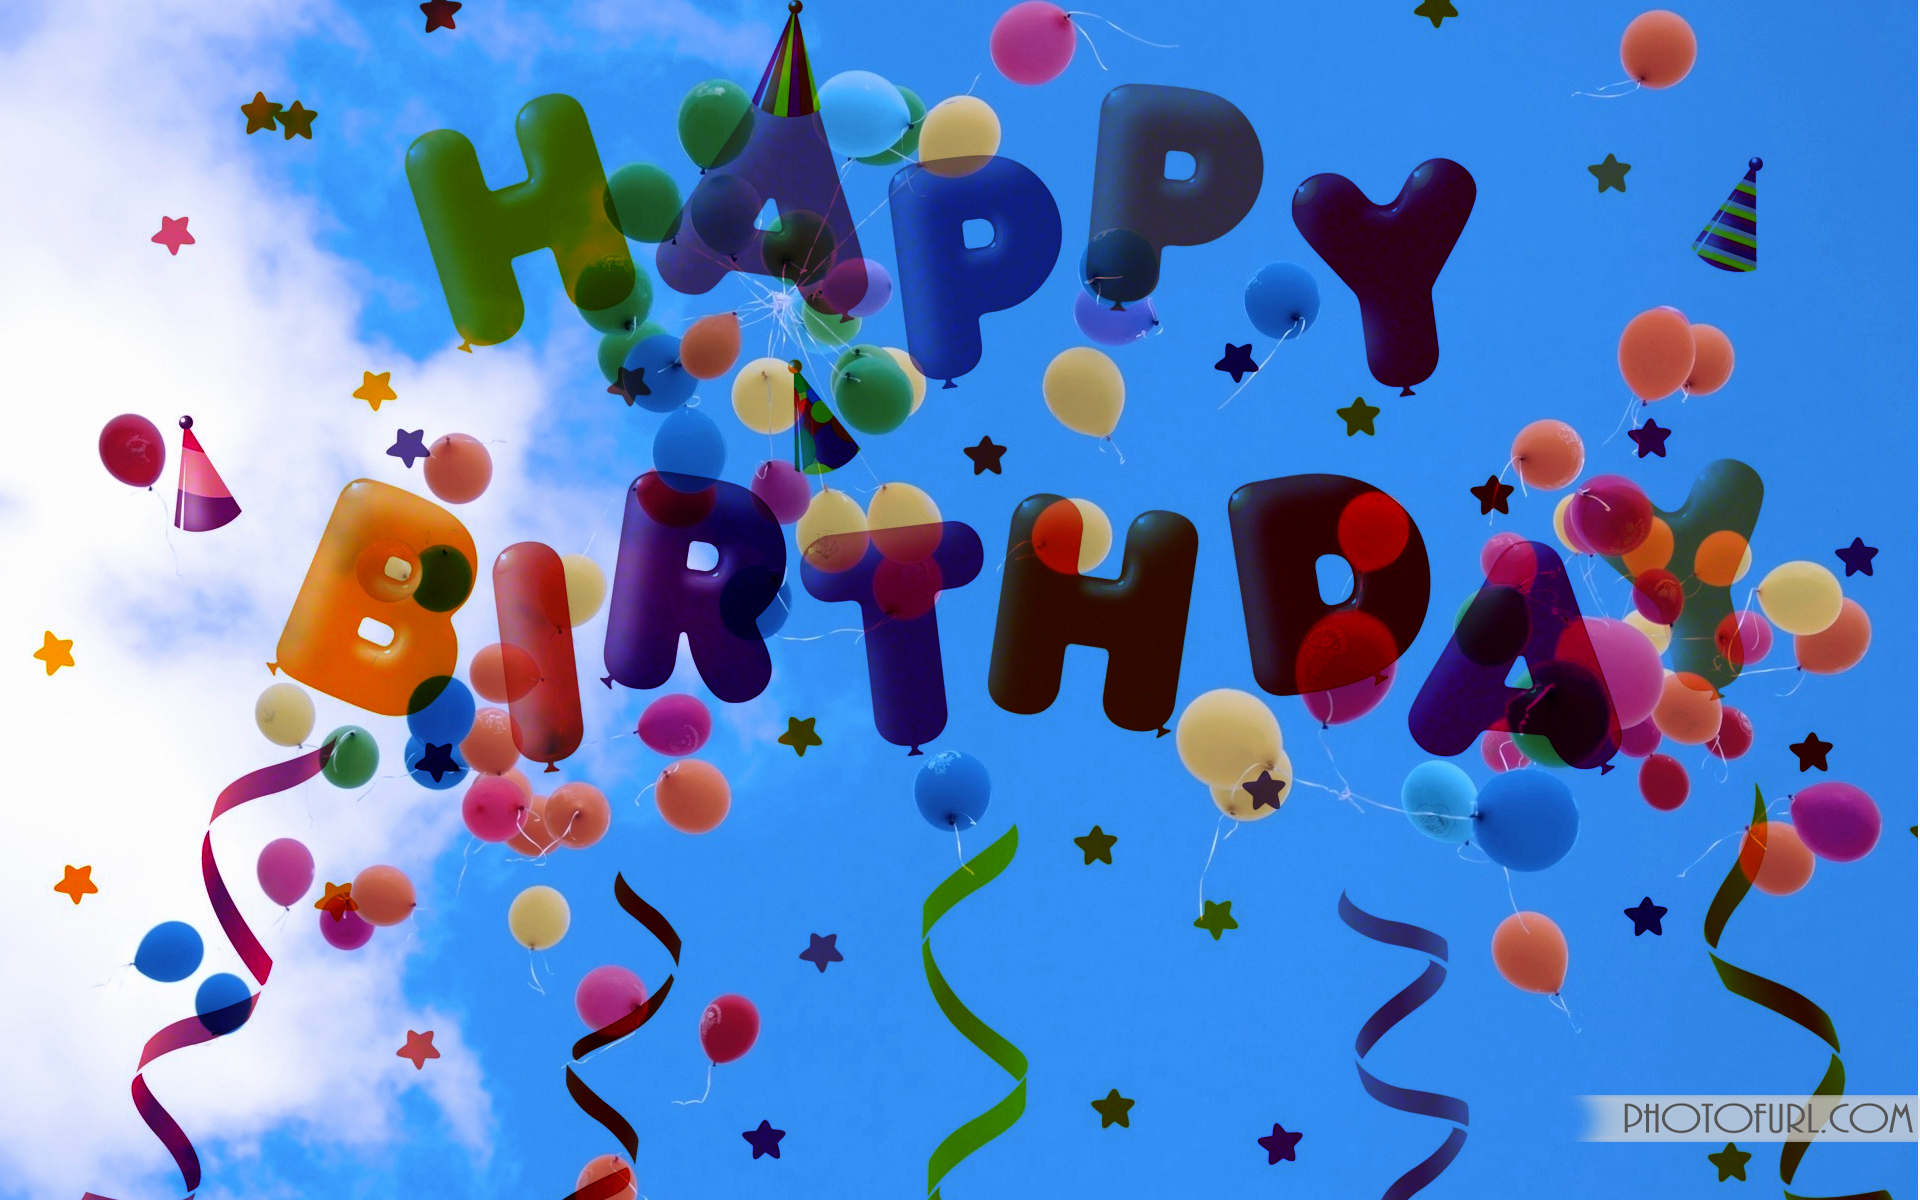 Happy Bday Wallpapers Free Unique Happy Birthday Wishes Wallpapers